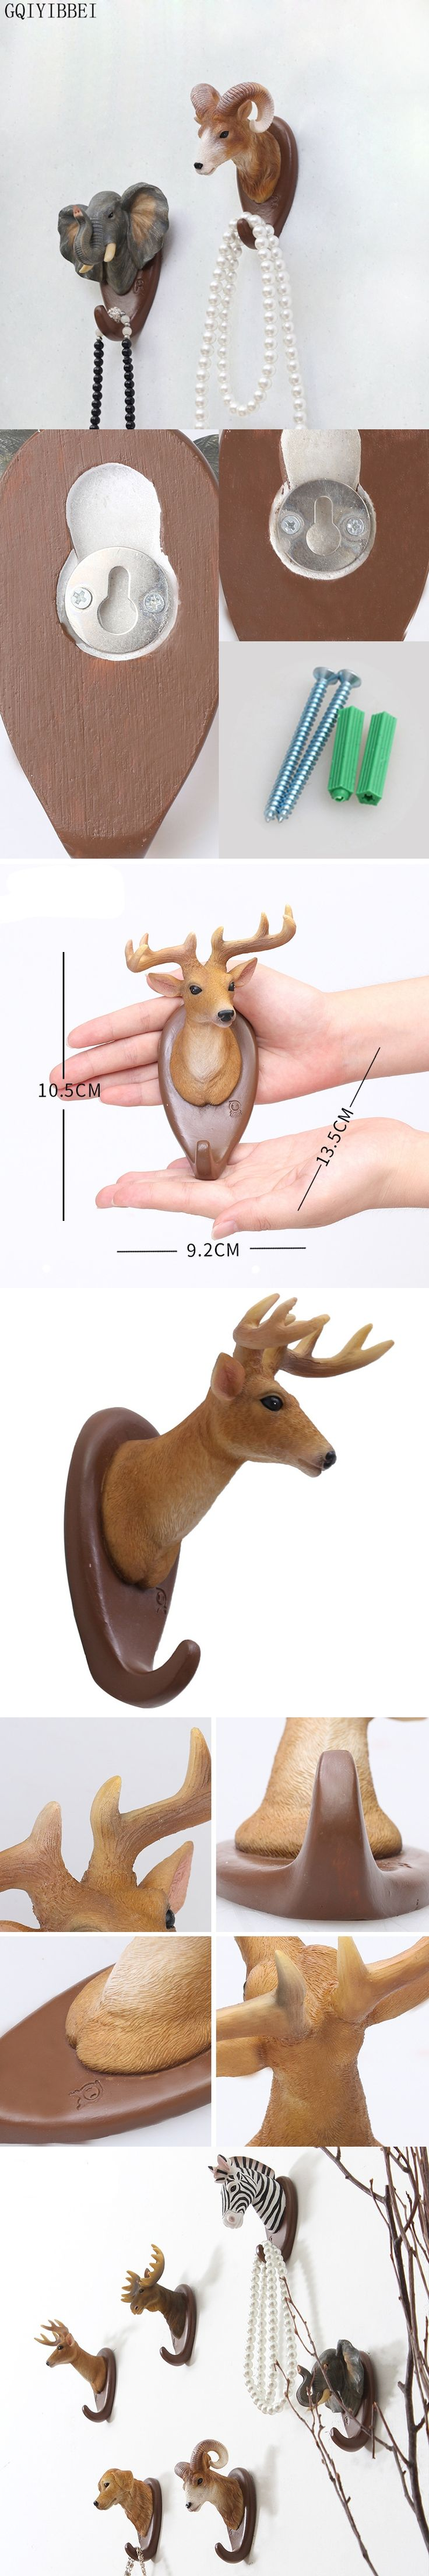 GQIYIBBEI Creative Resin Wall Hanging Hook Clothes Hanger Jungle Animals Elk Zebra Elephant Bar Home Adornment Storage Organizer